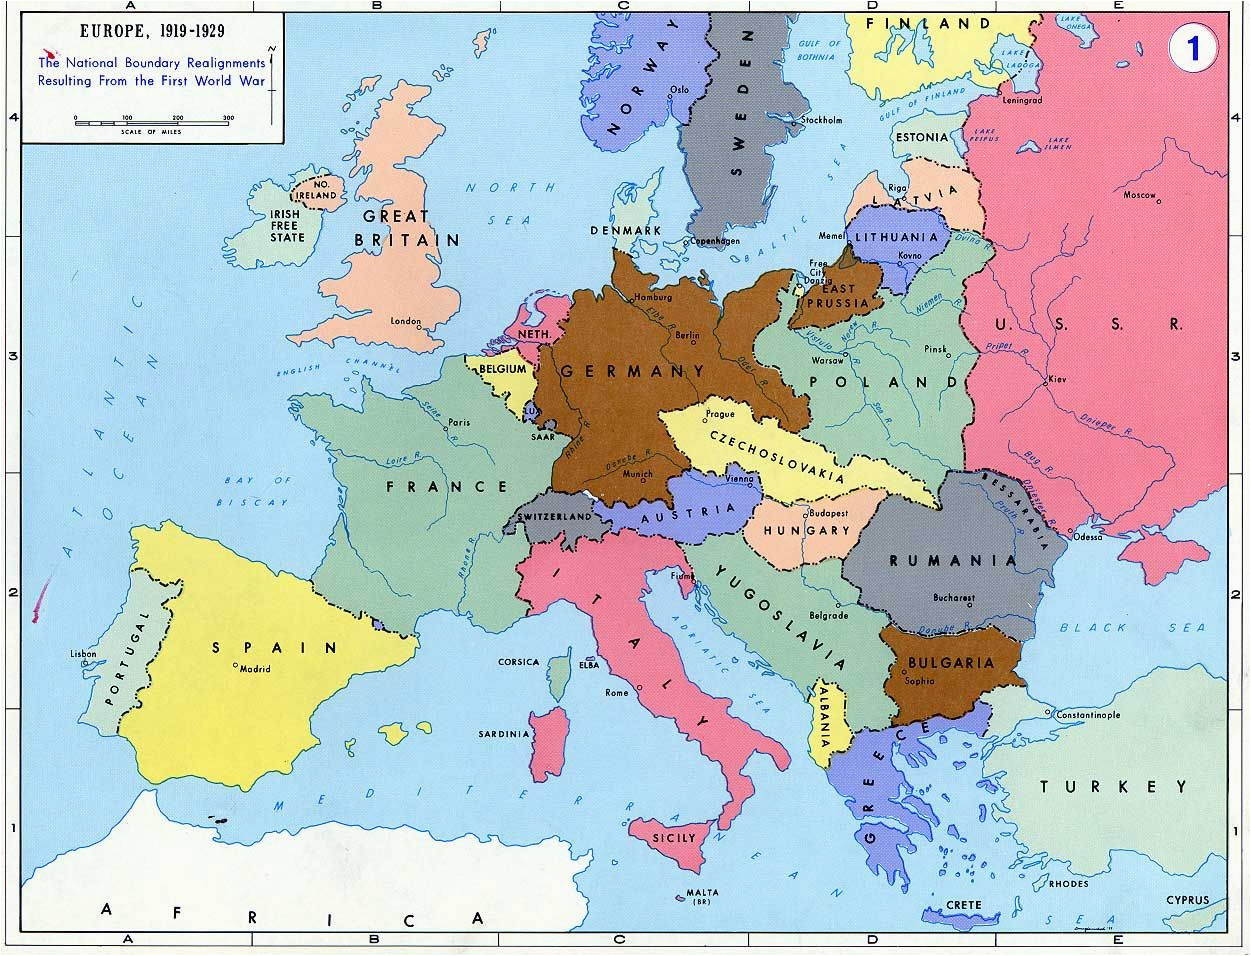 pre world war ii here are the boundaries as a result of